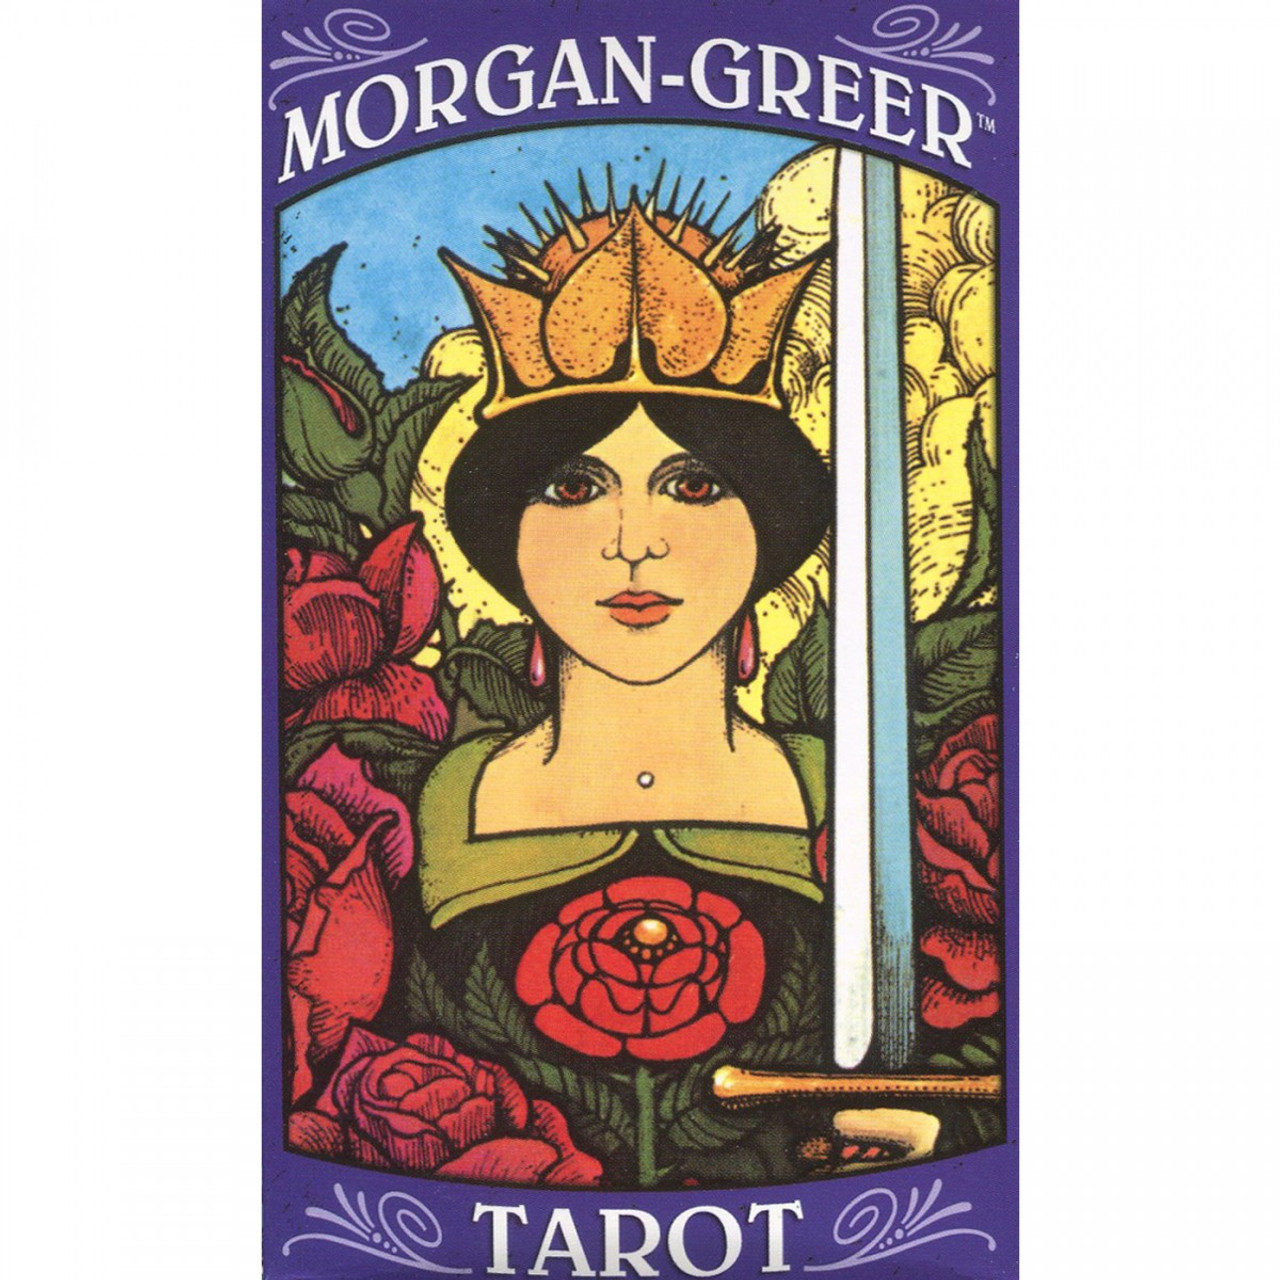 Morgan Greer Tarot Cards